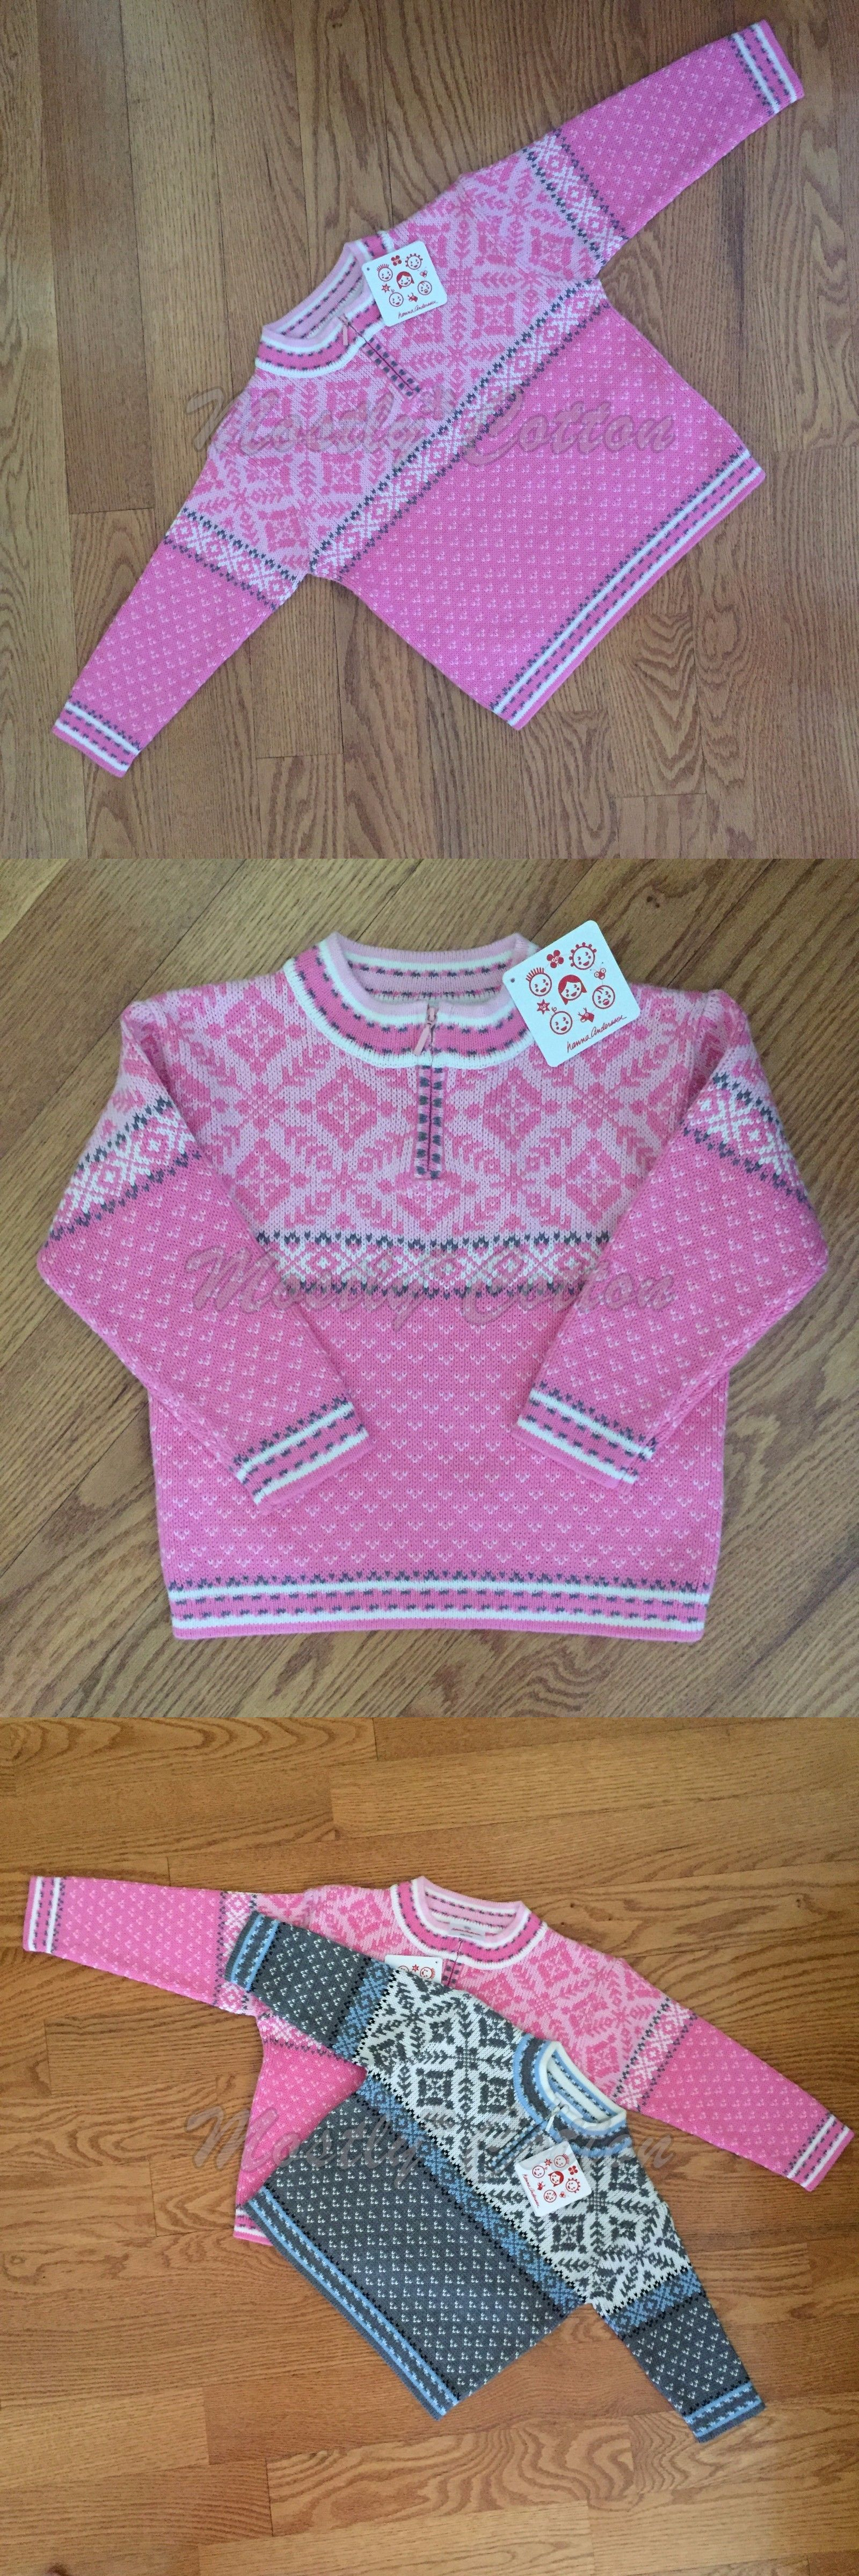 Sweaters 147216: Nwt 100 Hanna Andersson Cotton Holiday Pink ...